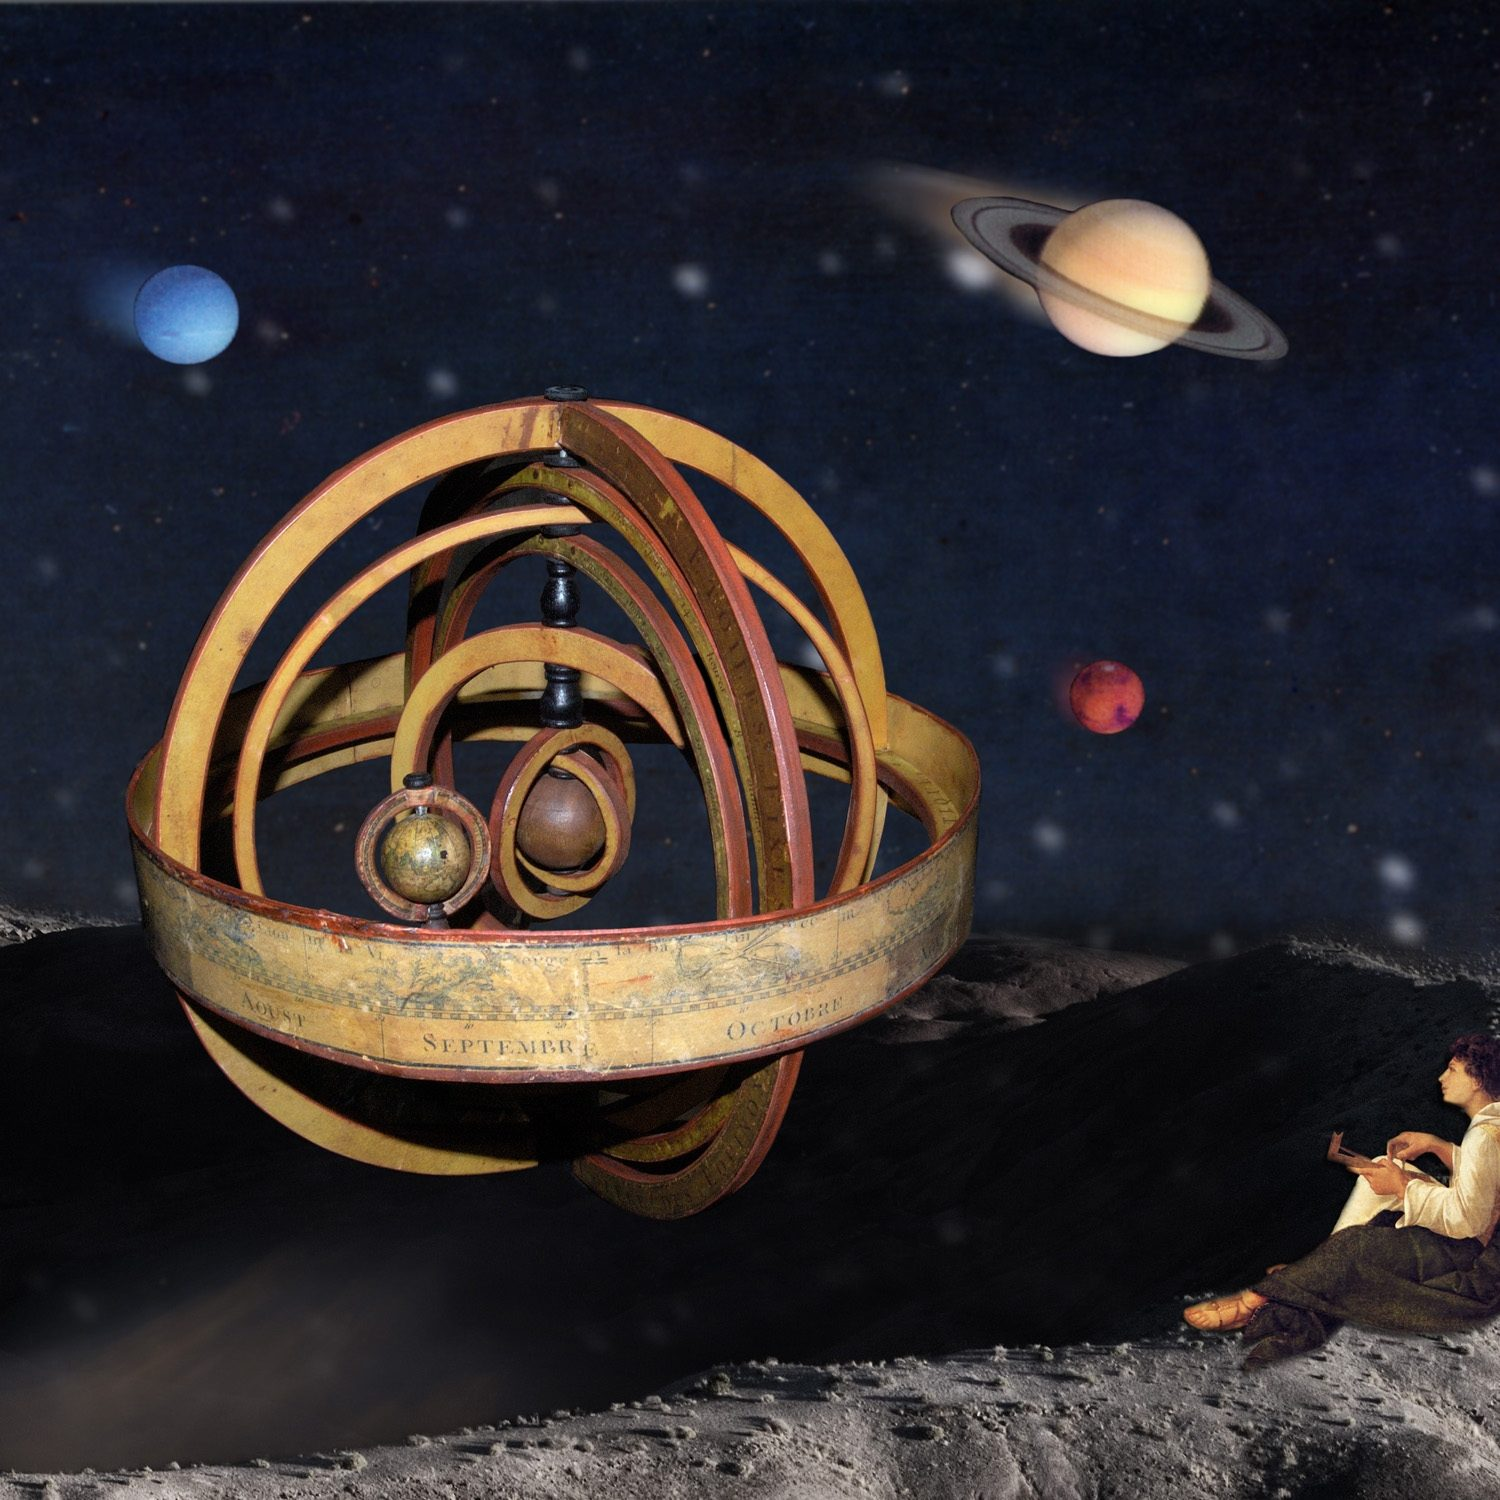 The armillary emerges quietly from the depths of the universe